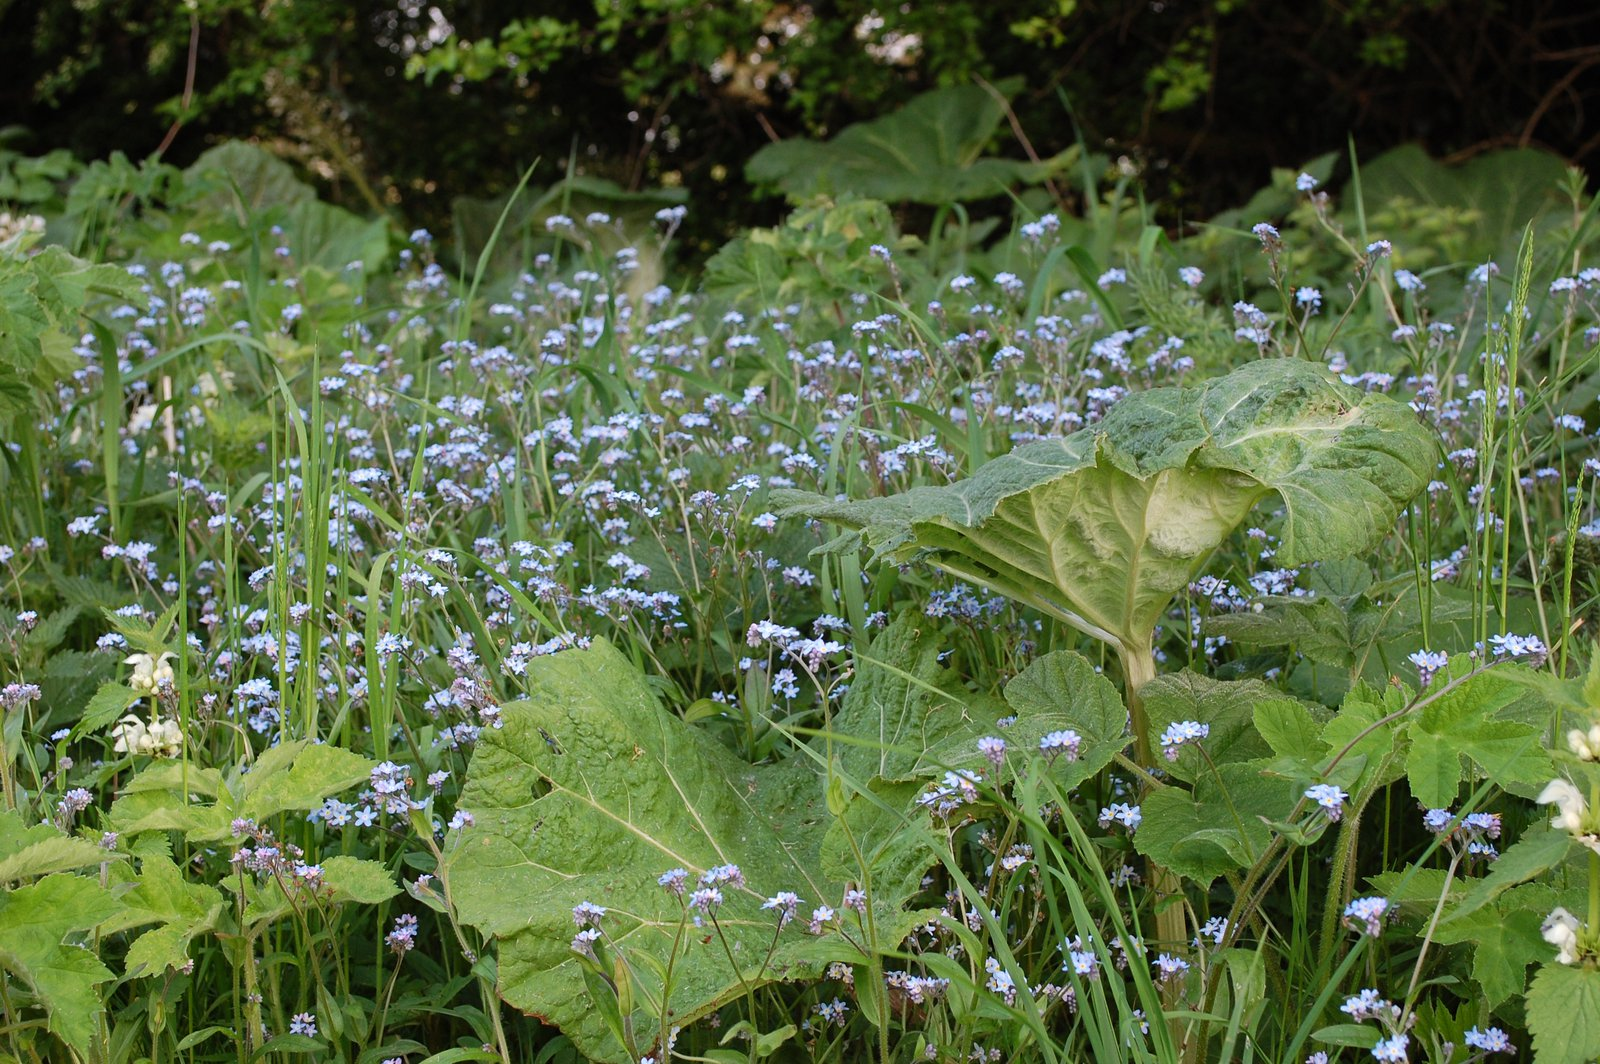 Forget-me-nots Among White Butterbur